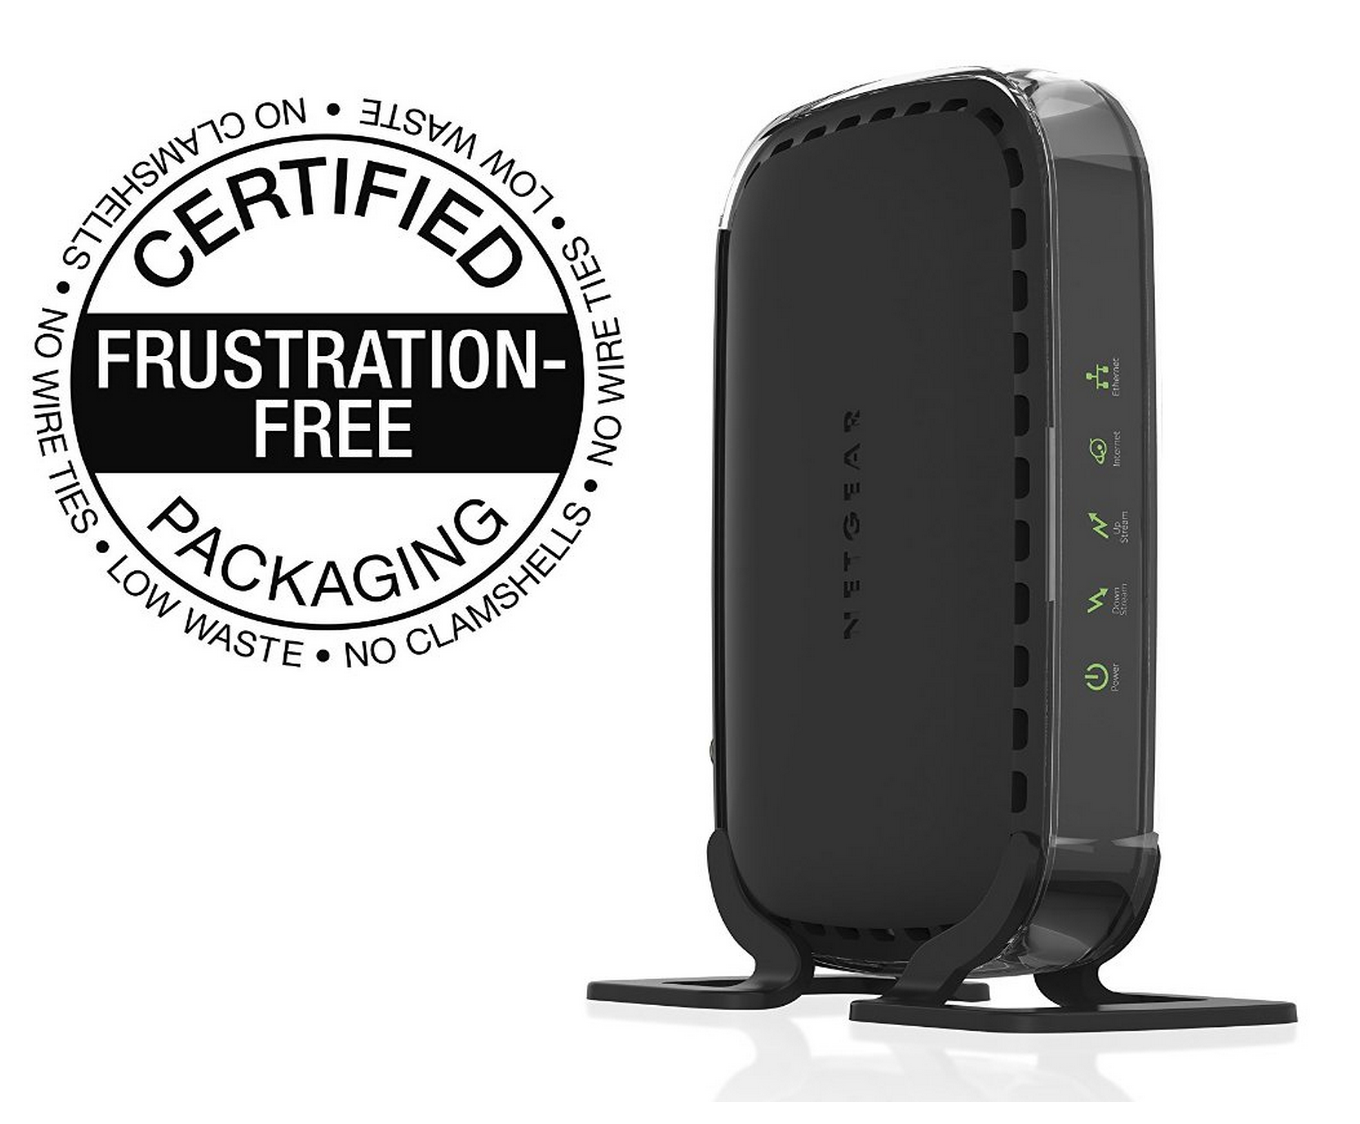 Netgear High Speed DOCSIS 3.0 Cable Modem (CM400-1AZNAS)